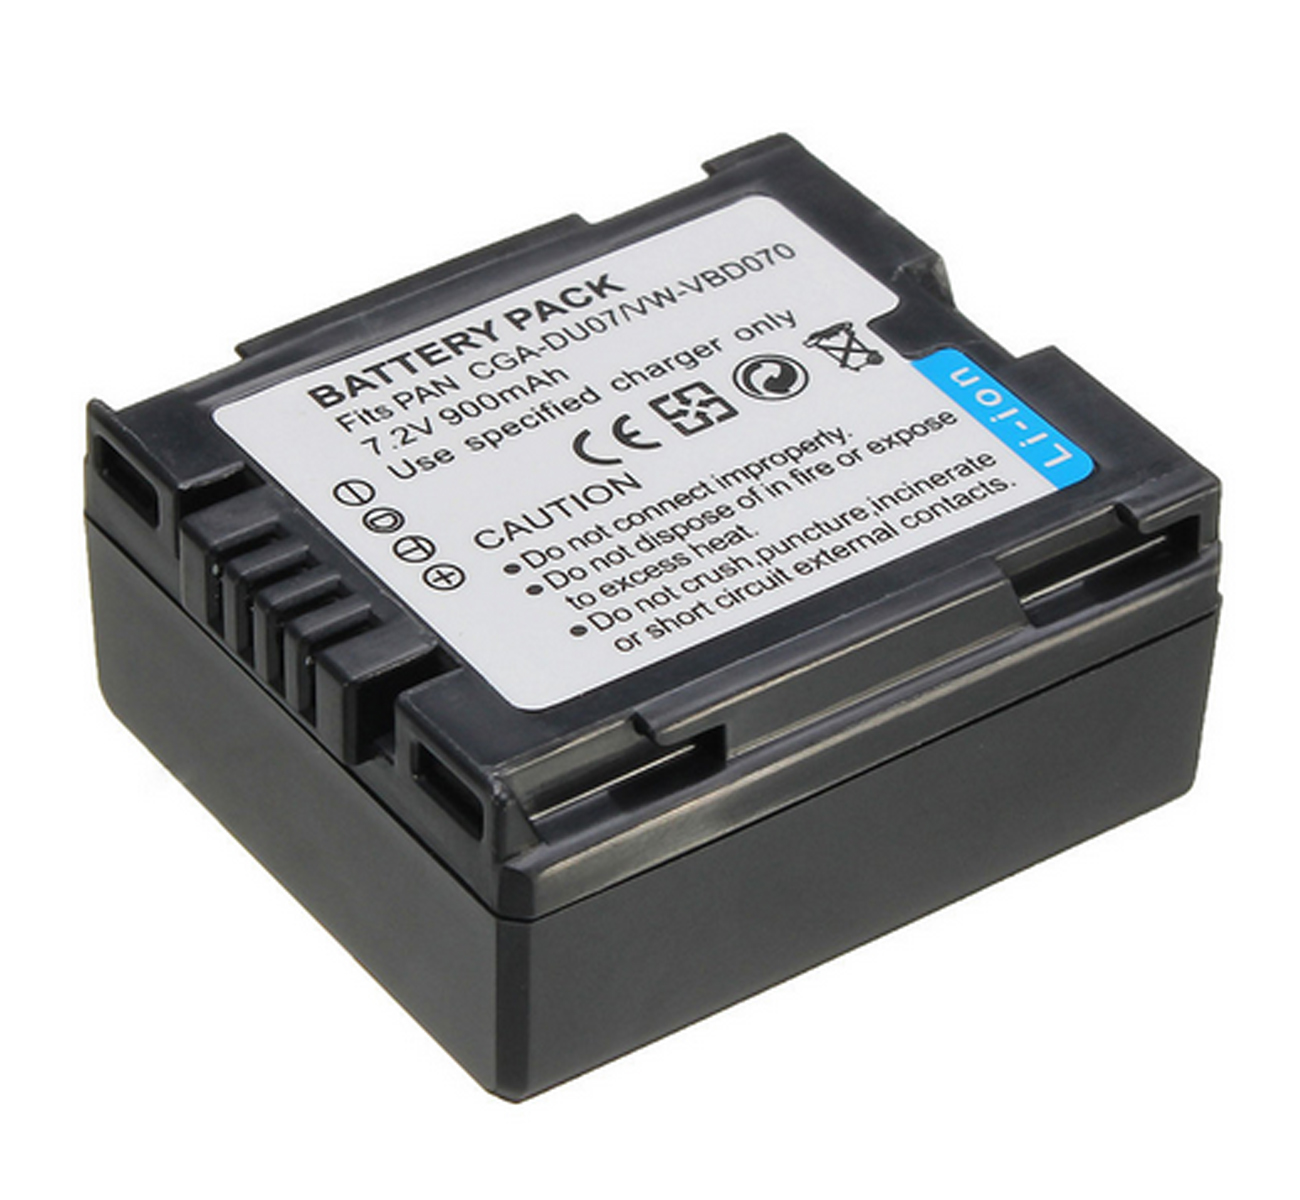 PV-GS59 Battery Pack for Panasonic PV-GS50 PV-GS55 PV-GS69 Camcorder PV-GS65